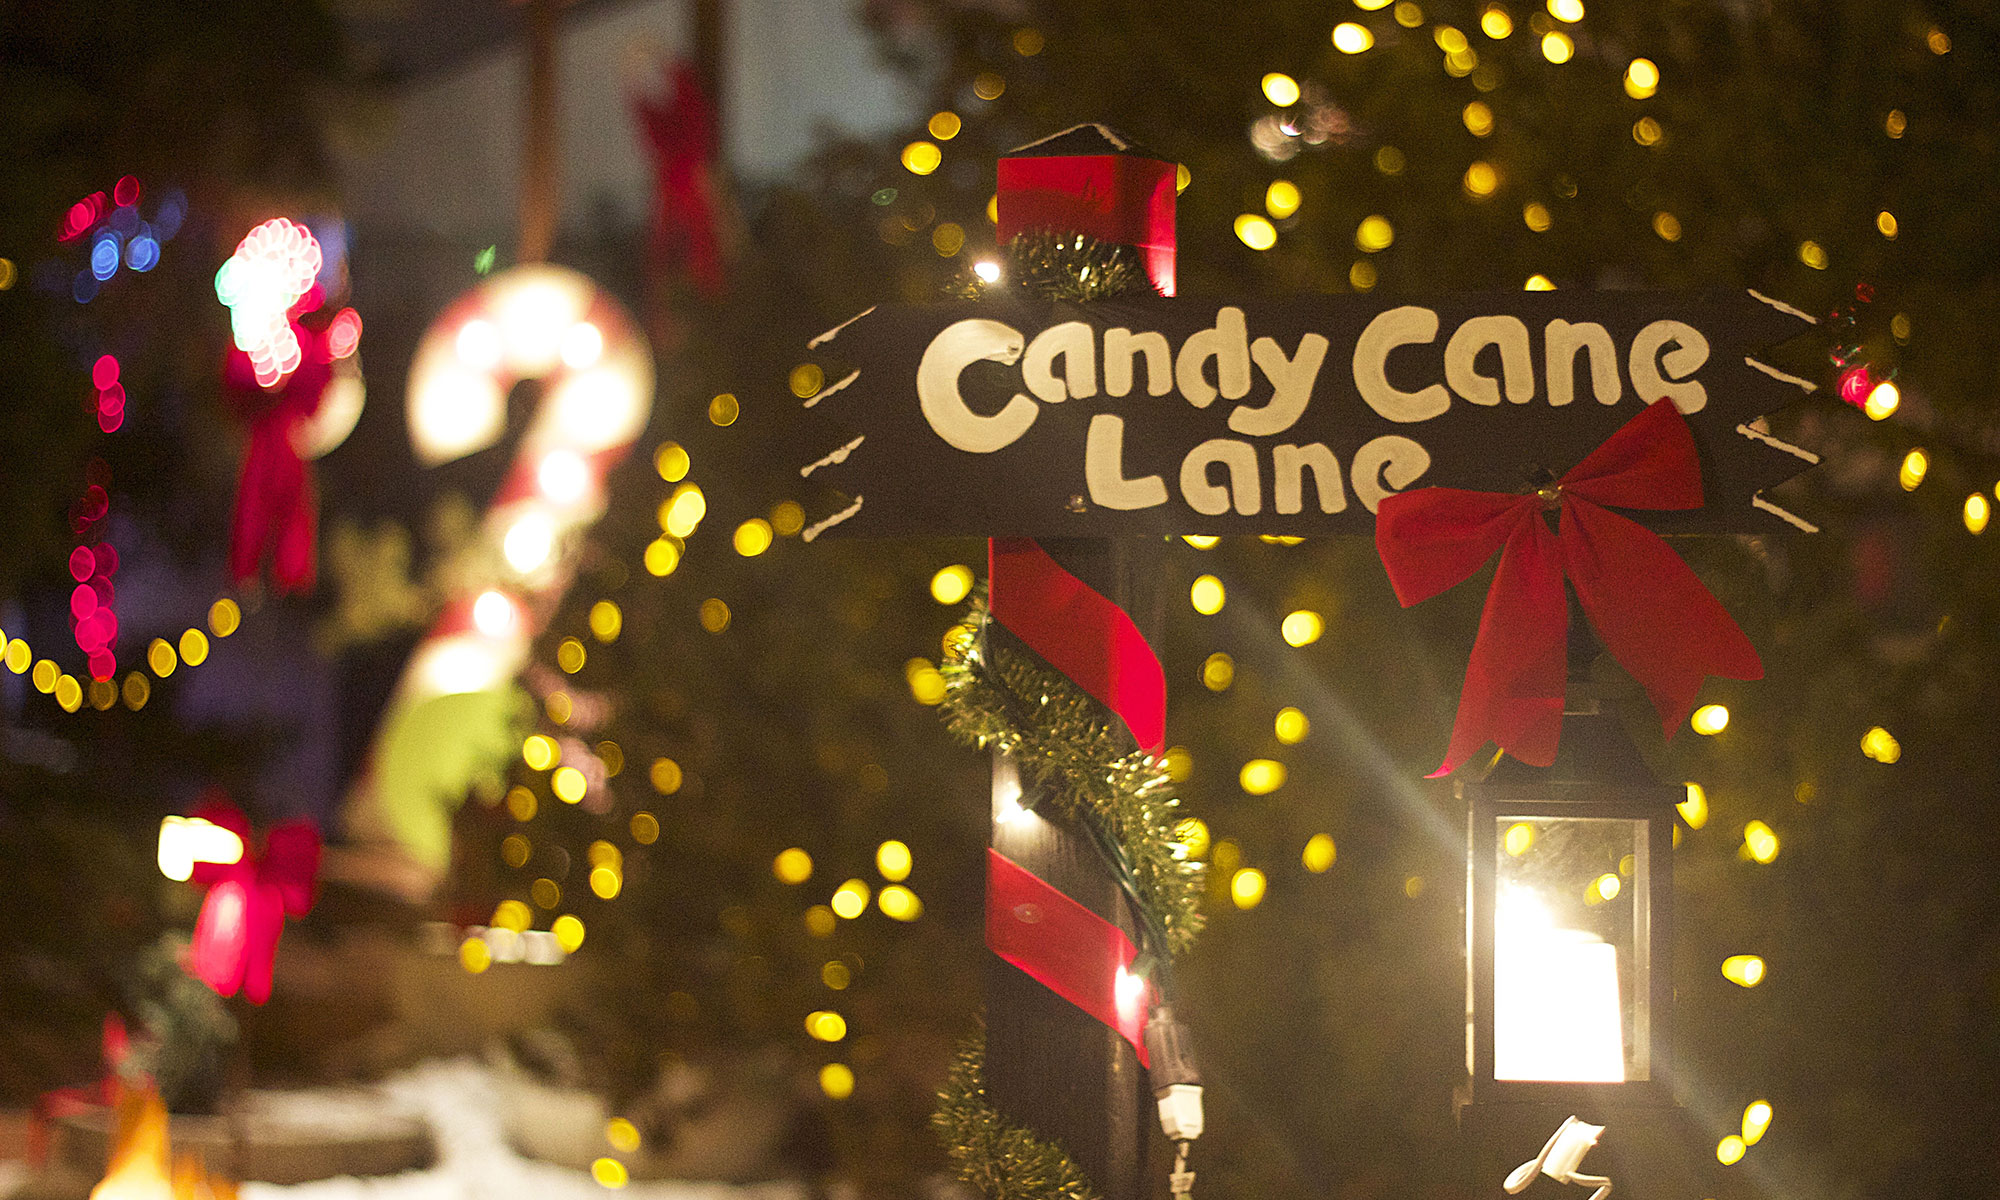 Candy Cane Lane with giant candy canes